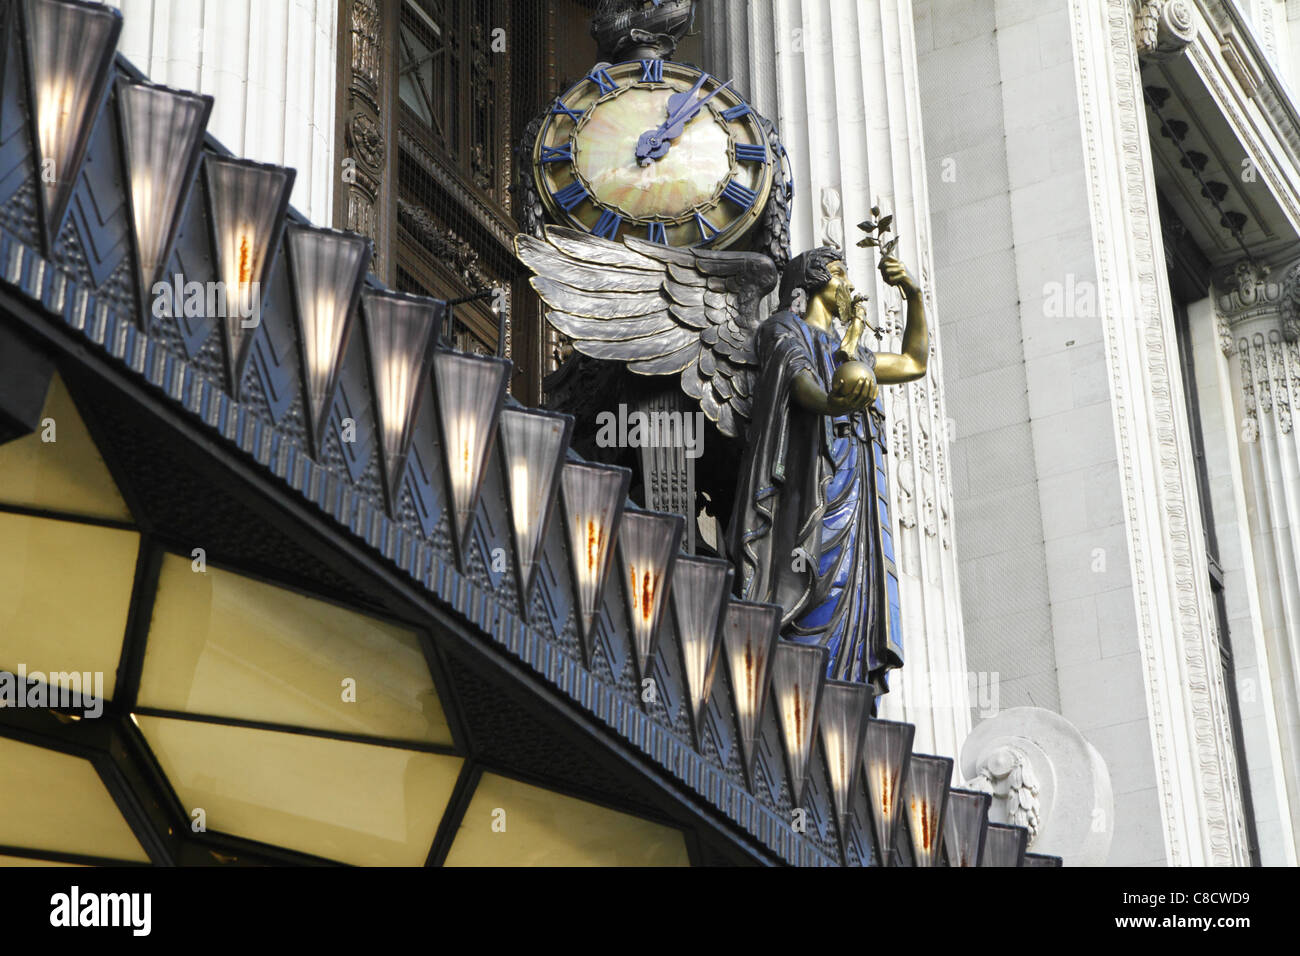 The 'Queen of Time' clock at Selfridges department store, London UK - Stock Image